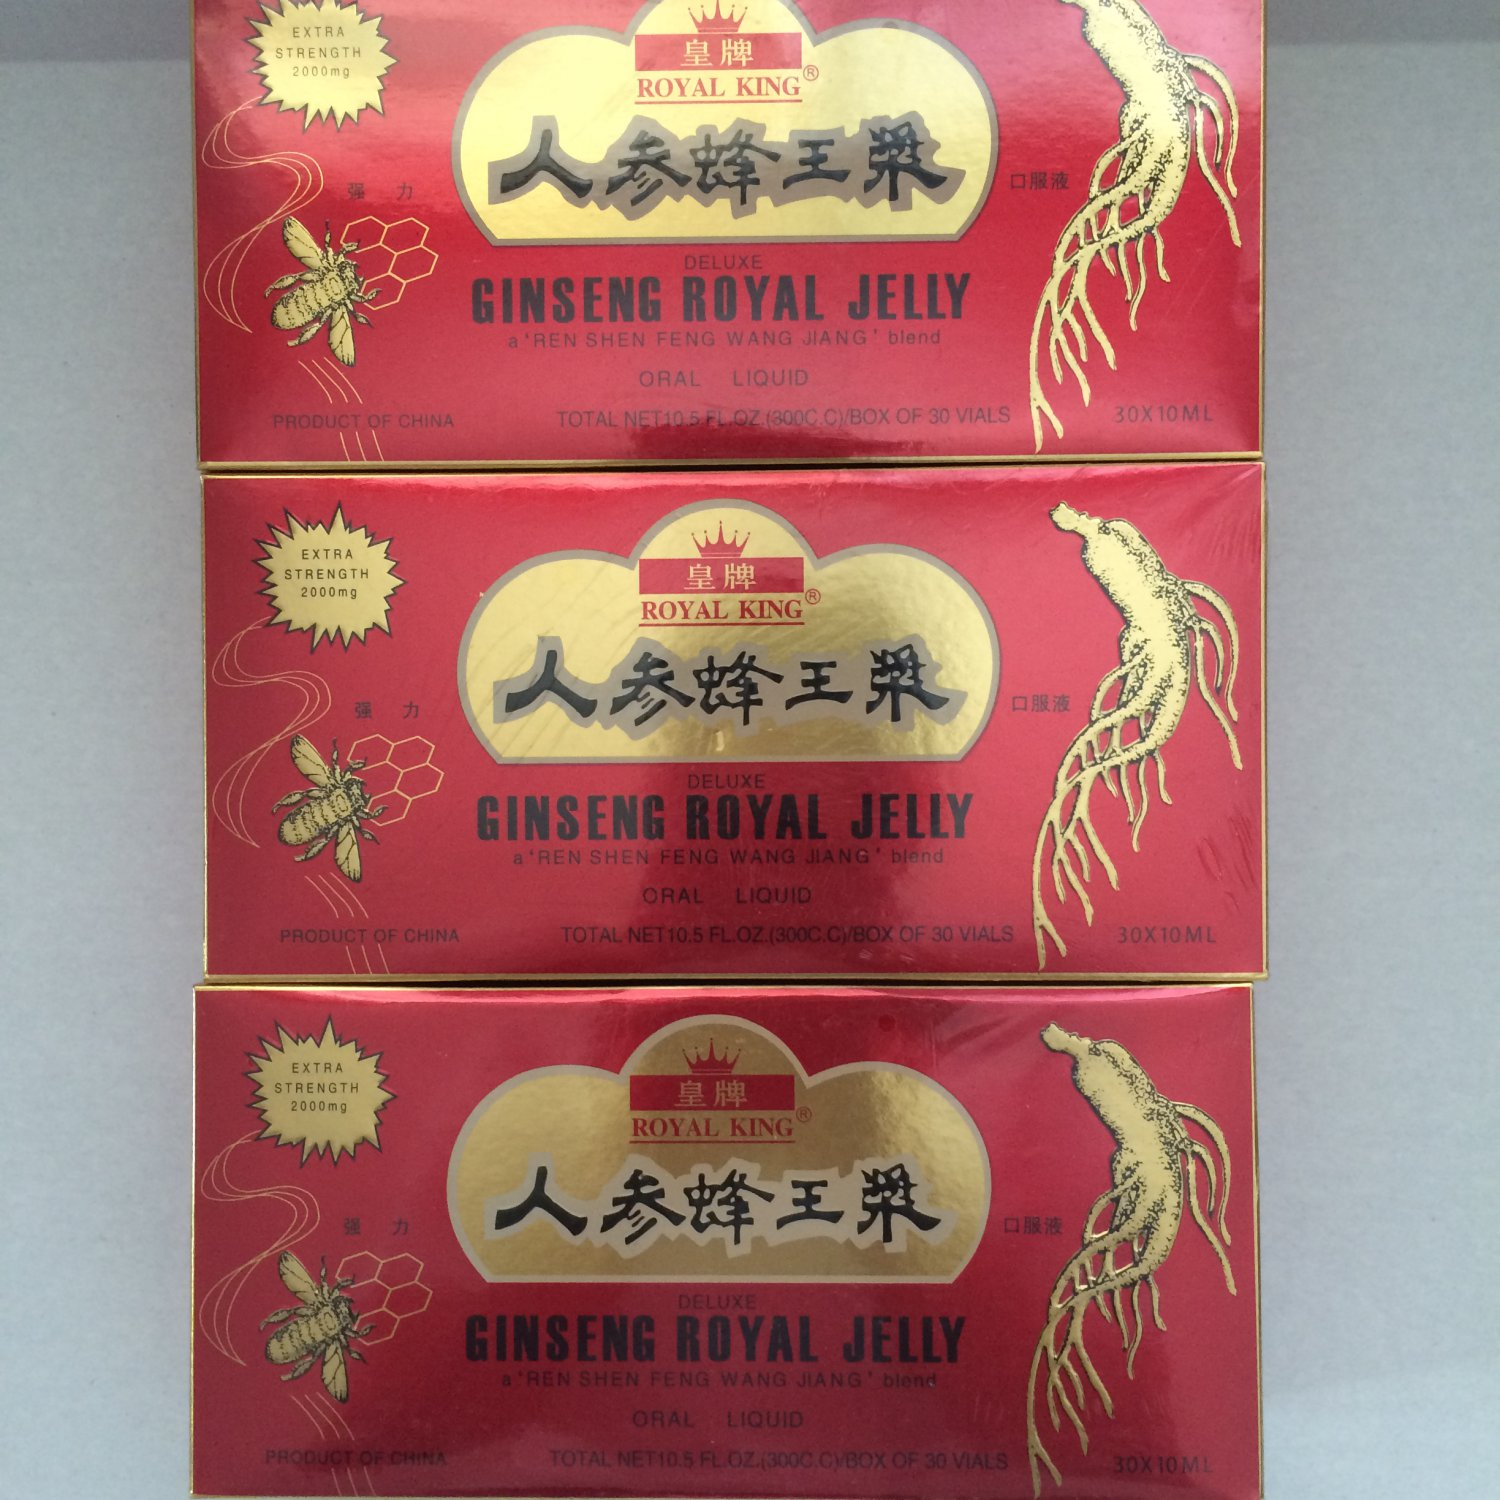 Royal King Deluxe Ginseng Royal Jelly Oral Liquid 90 Vials(bottle) 3 Box